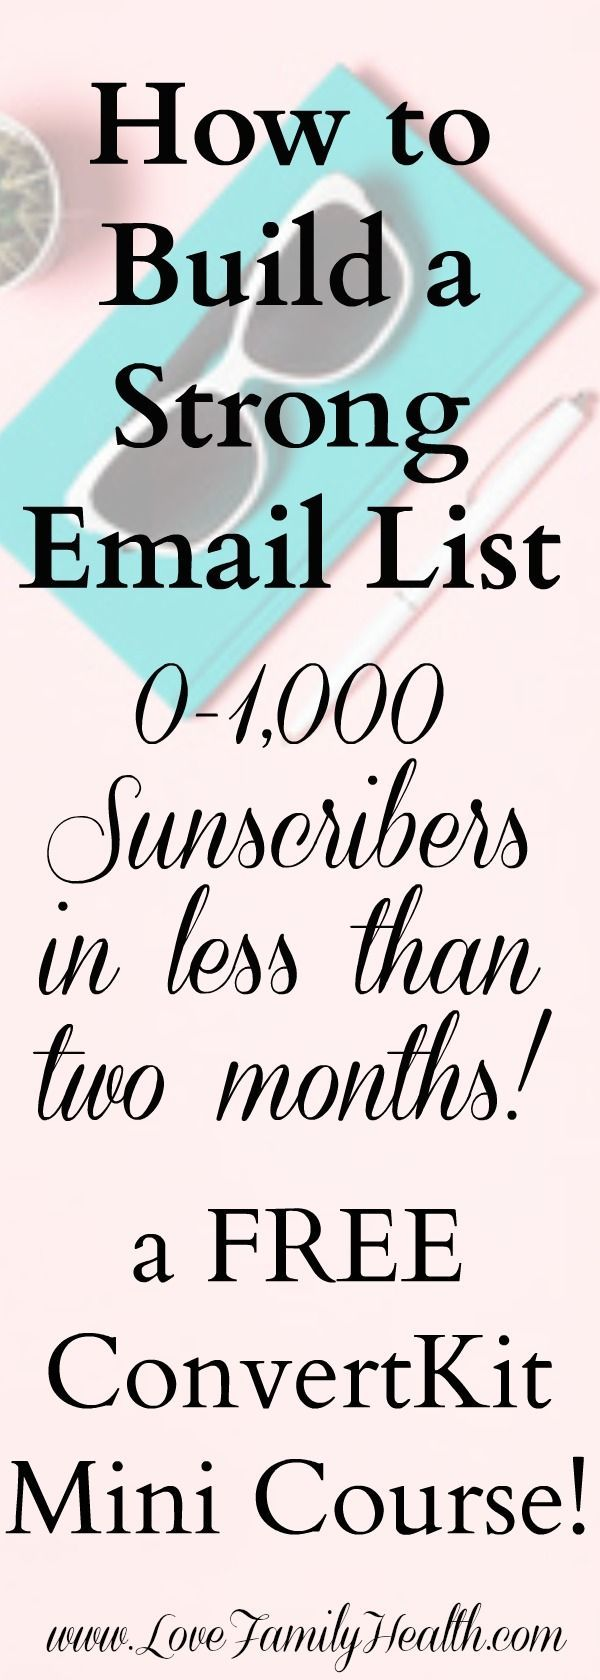 How to rapidly grow your email list and get more subscribers! #entrepreneur #startup #followback